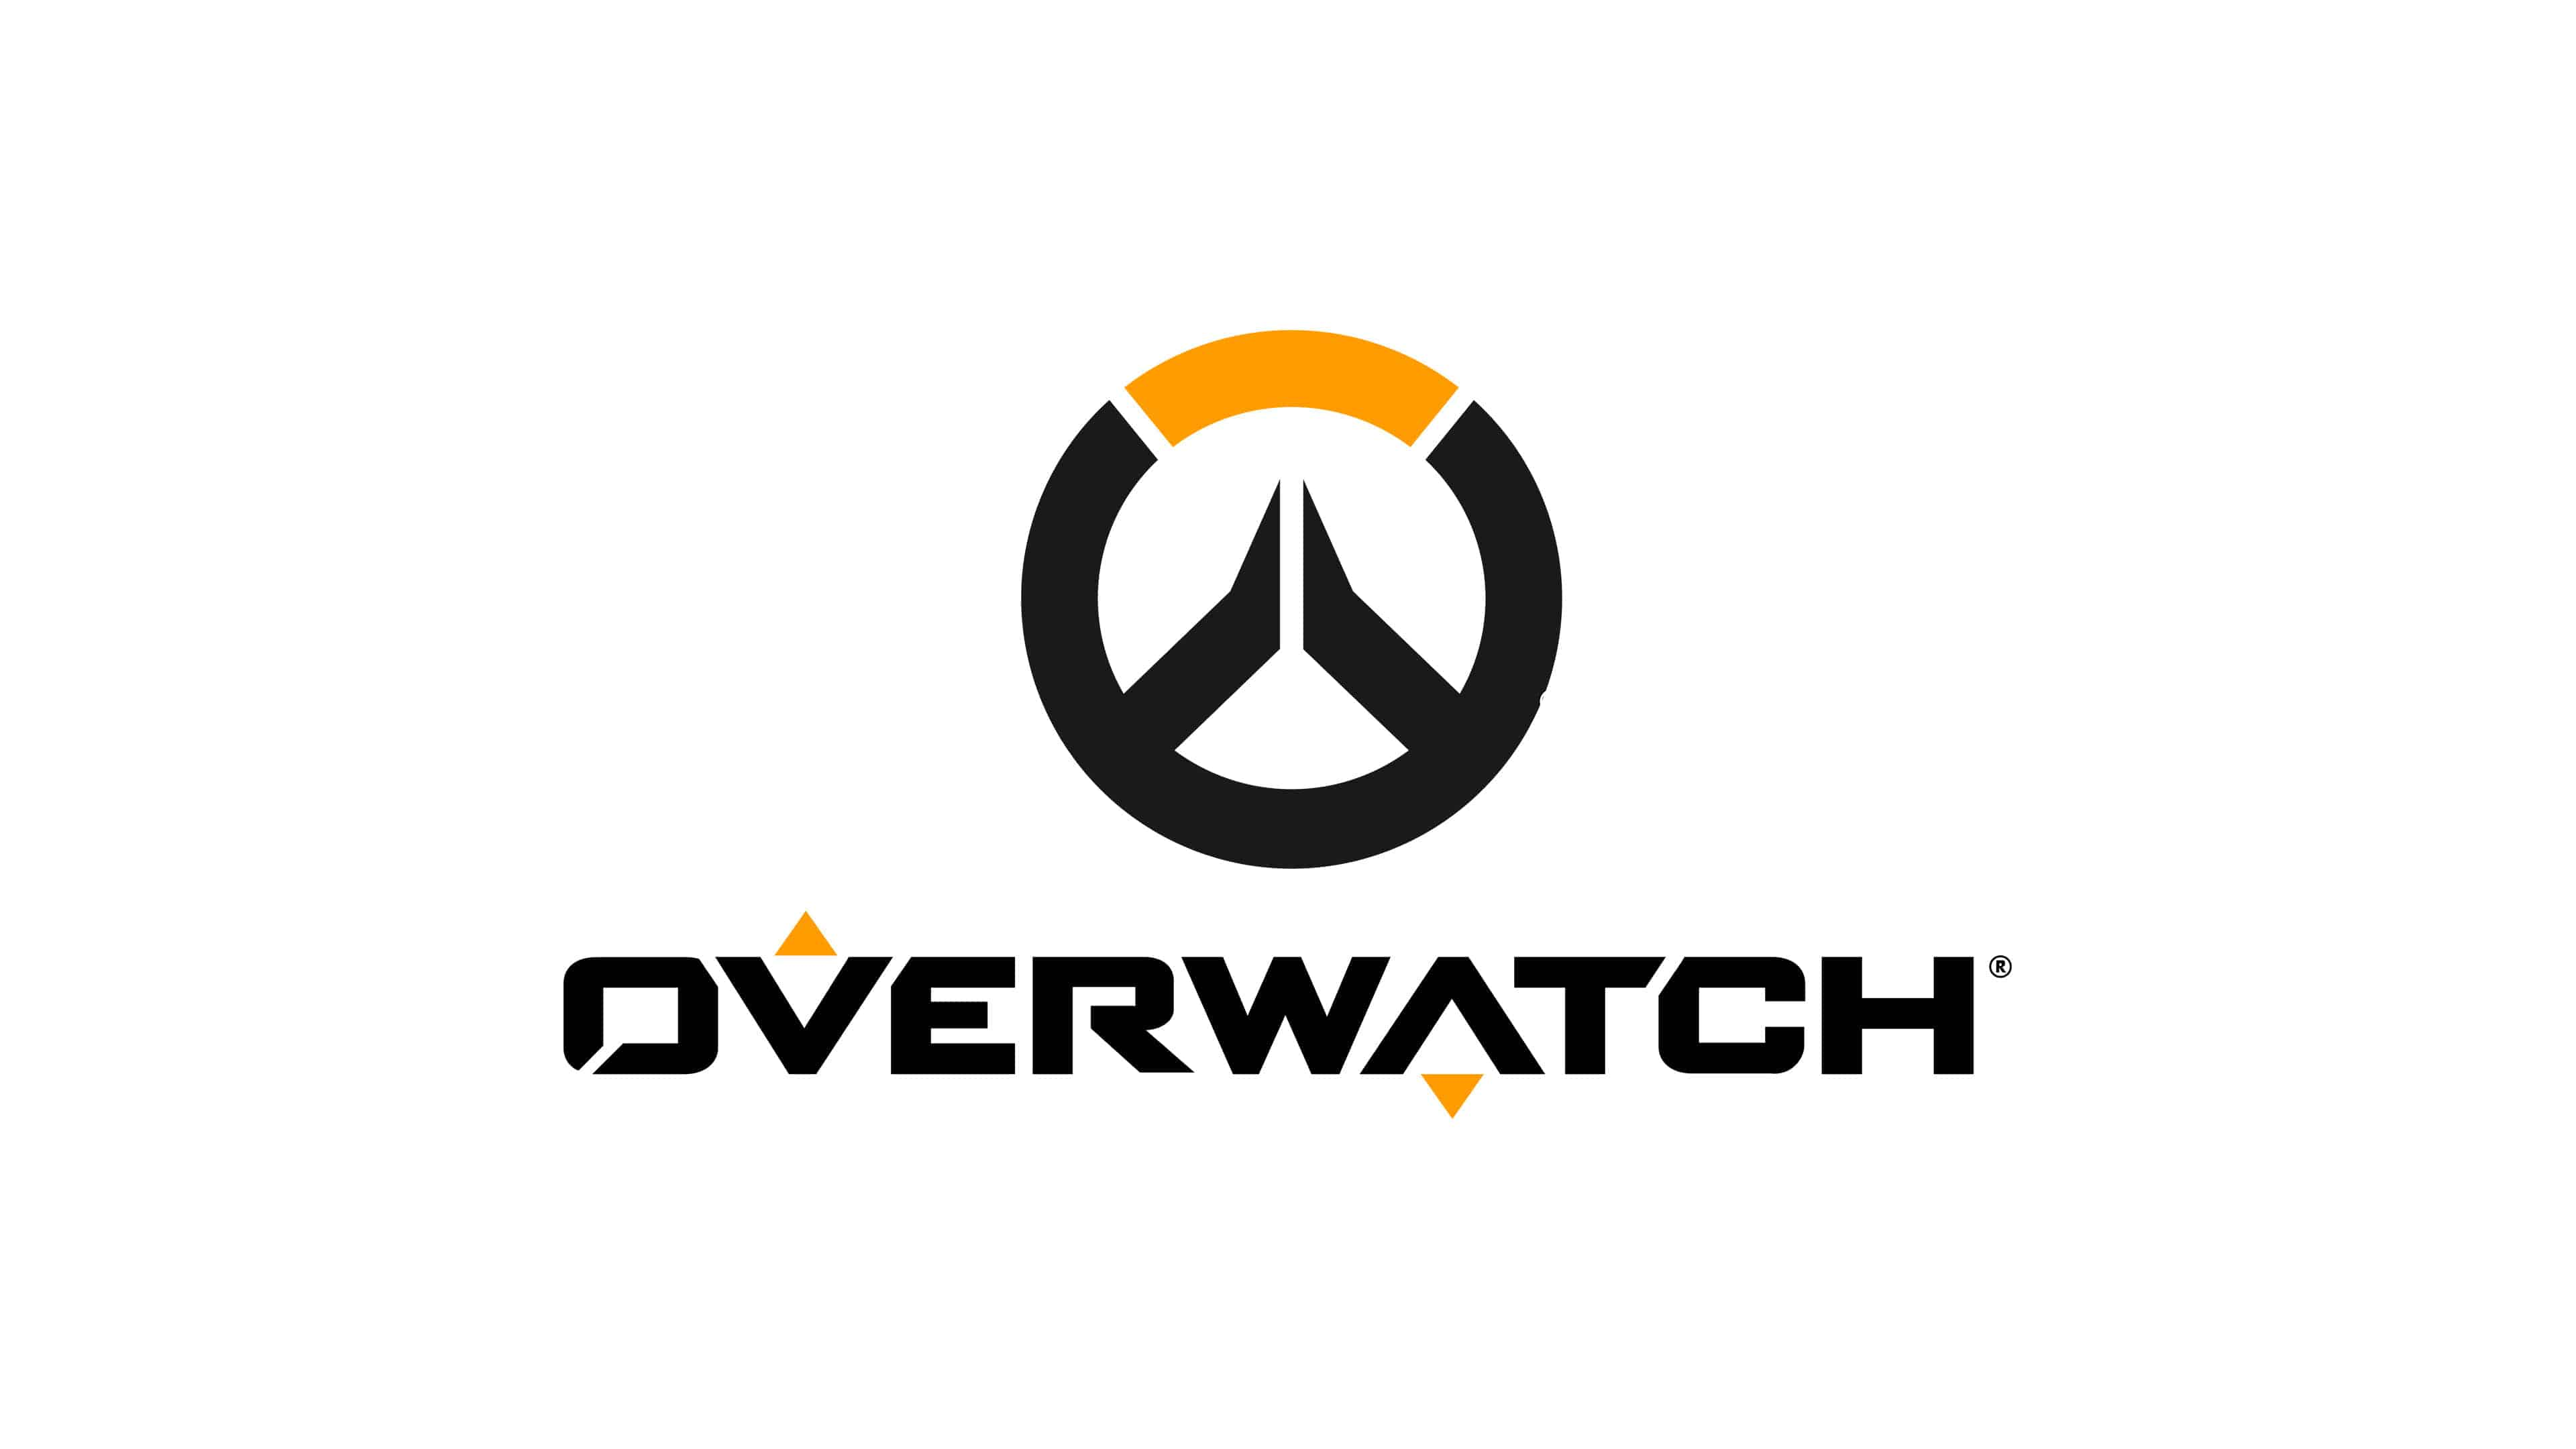 Nature Animals Wallpaper Overwatch Logo Uhd 4k Wallpaper Pixelz